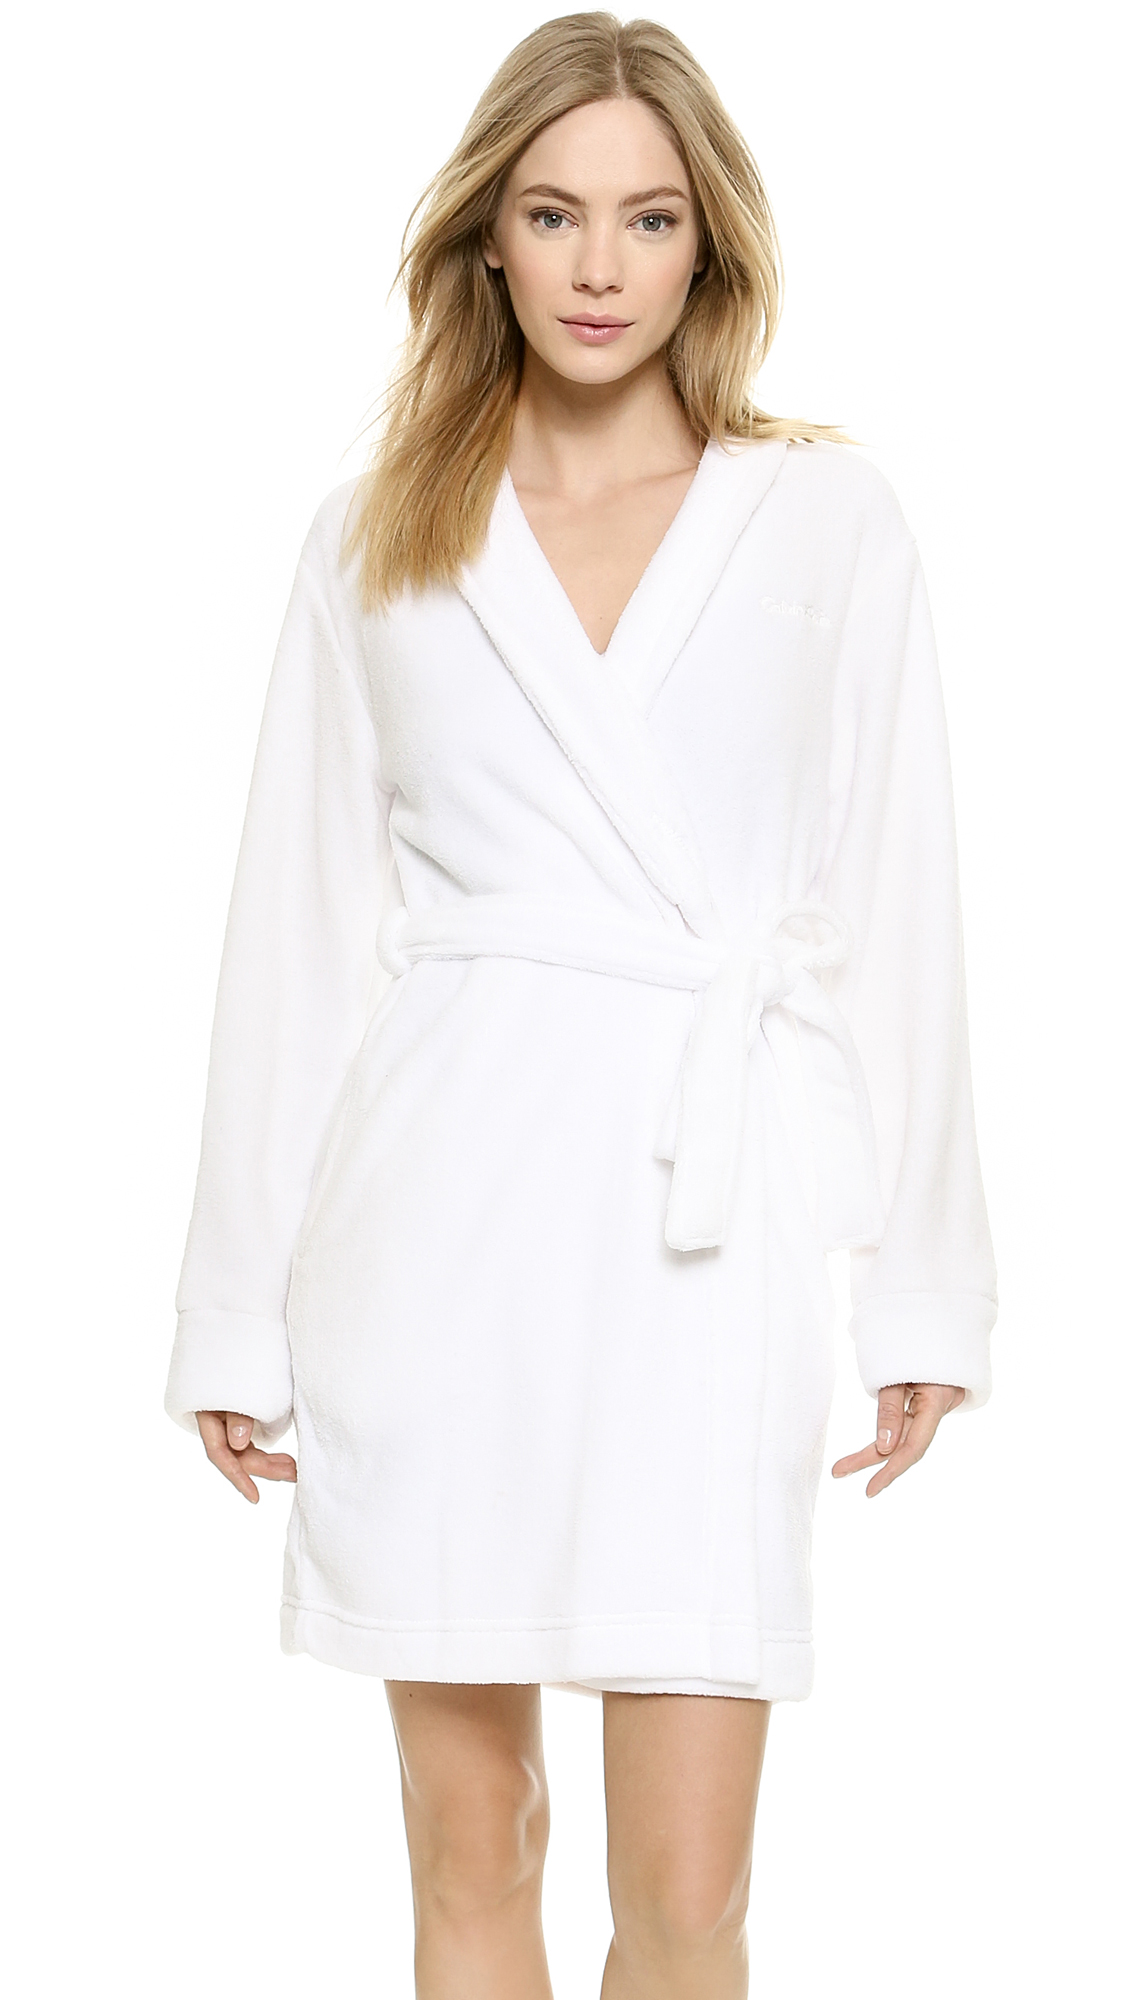 Outstanding Calvin Klein Dressing Gown Ladies Images - Images for ...